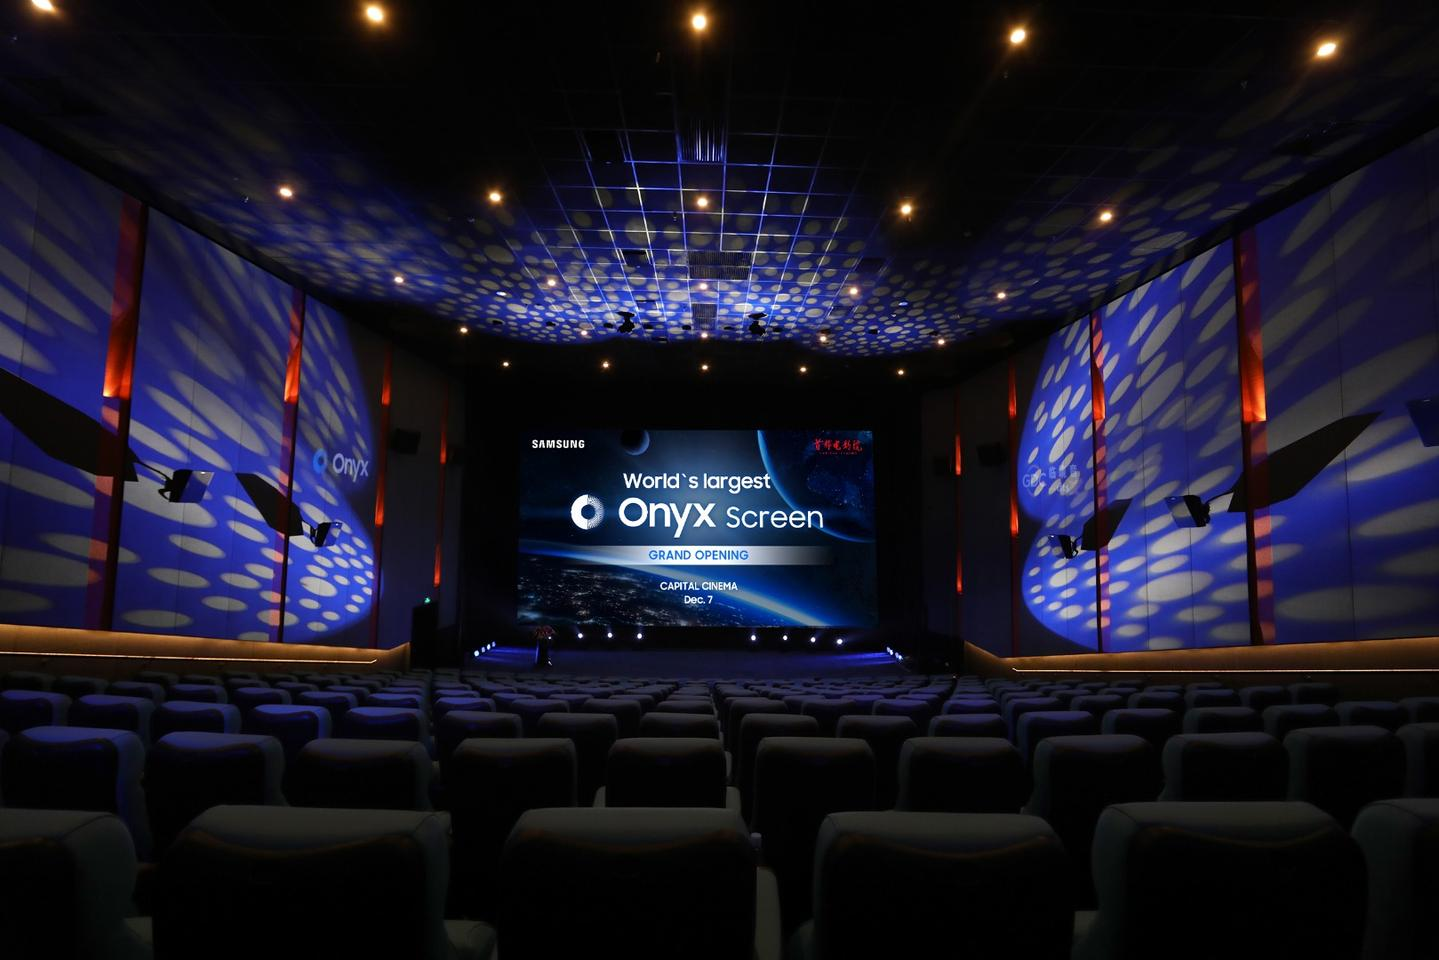 """Capital Cinema says that movie-goers can look forward to a """"best in class cinema experience"""" thanks to Samsung's huge Onyx Cinema LED screen"""